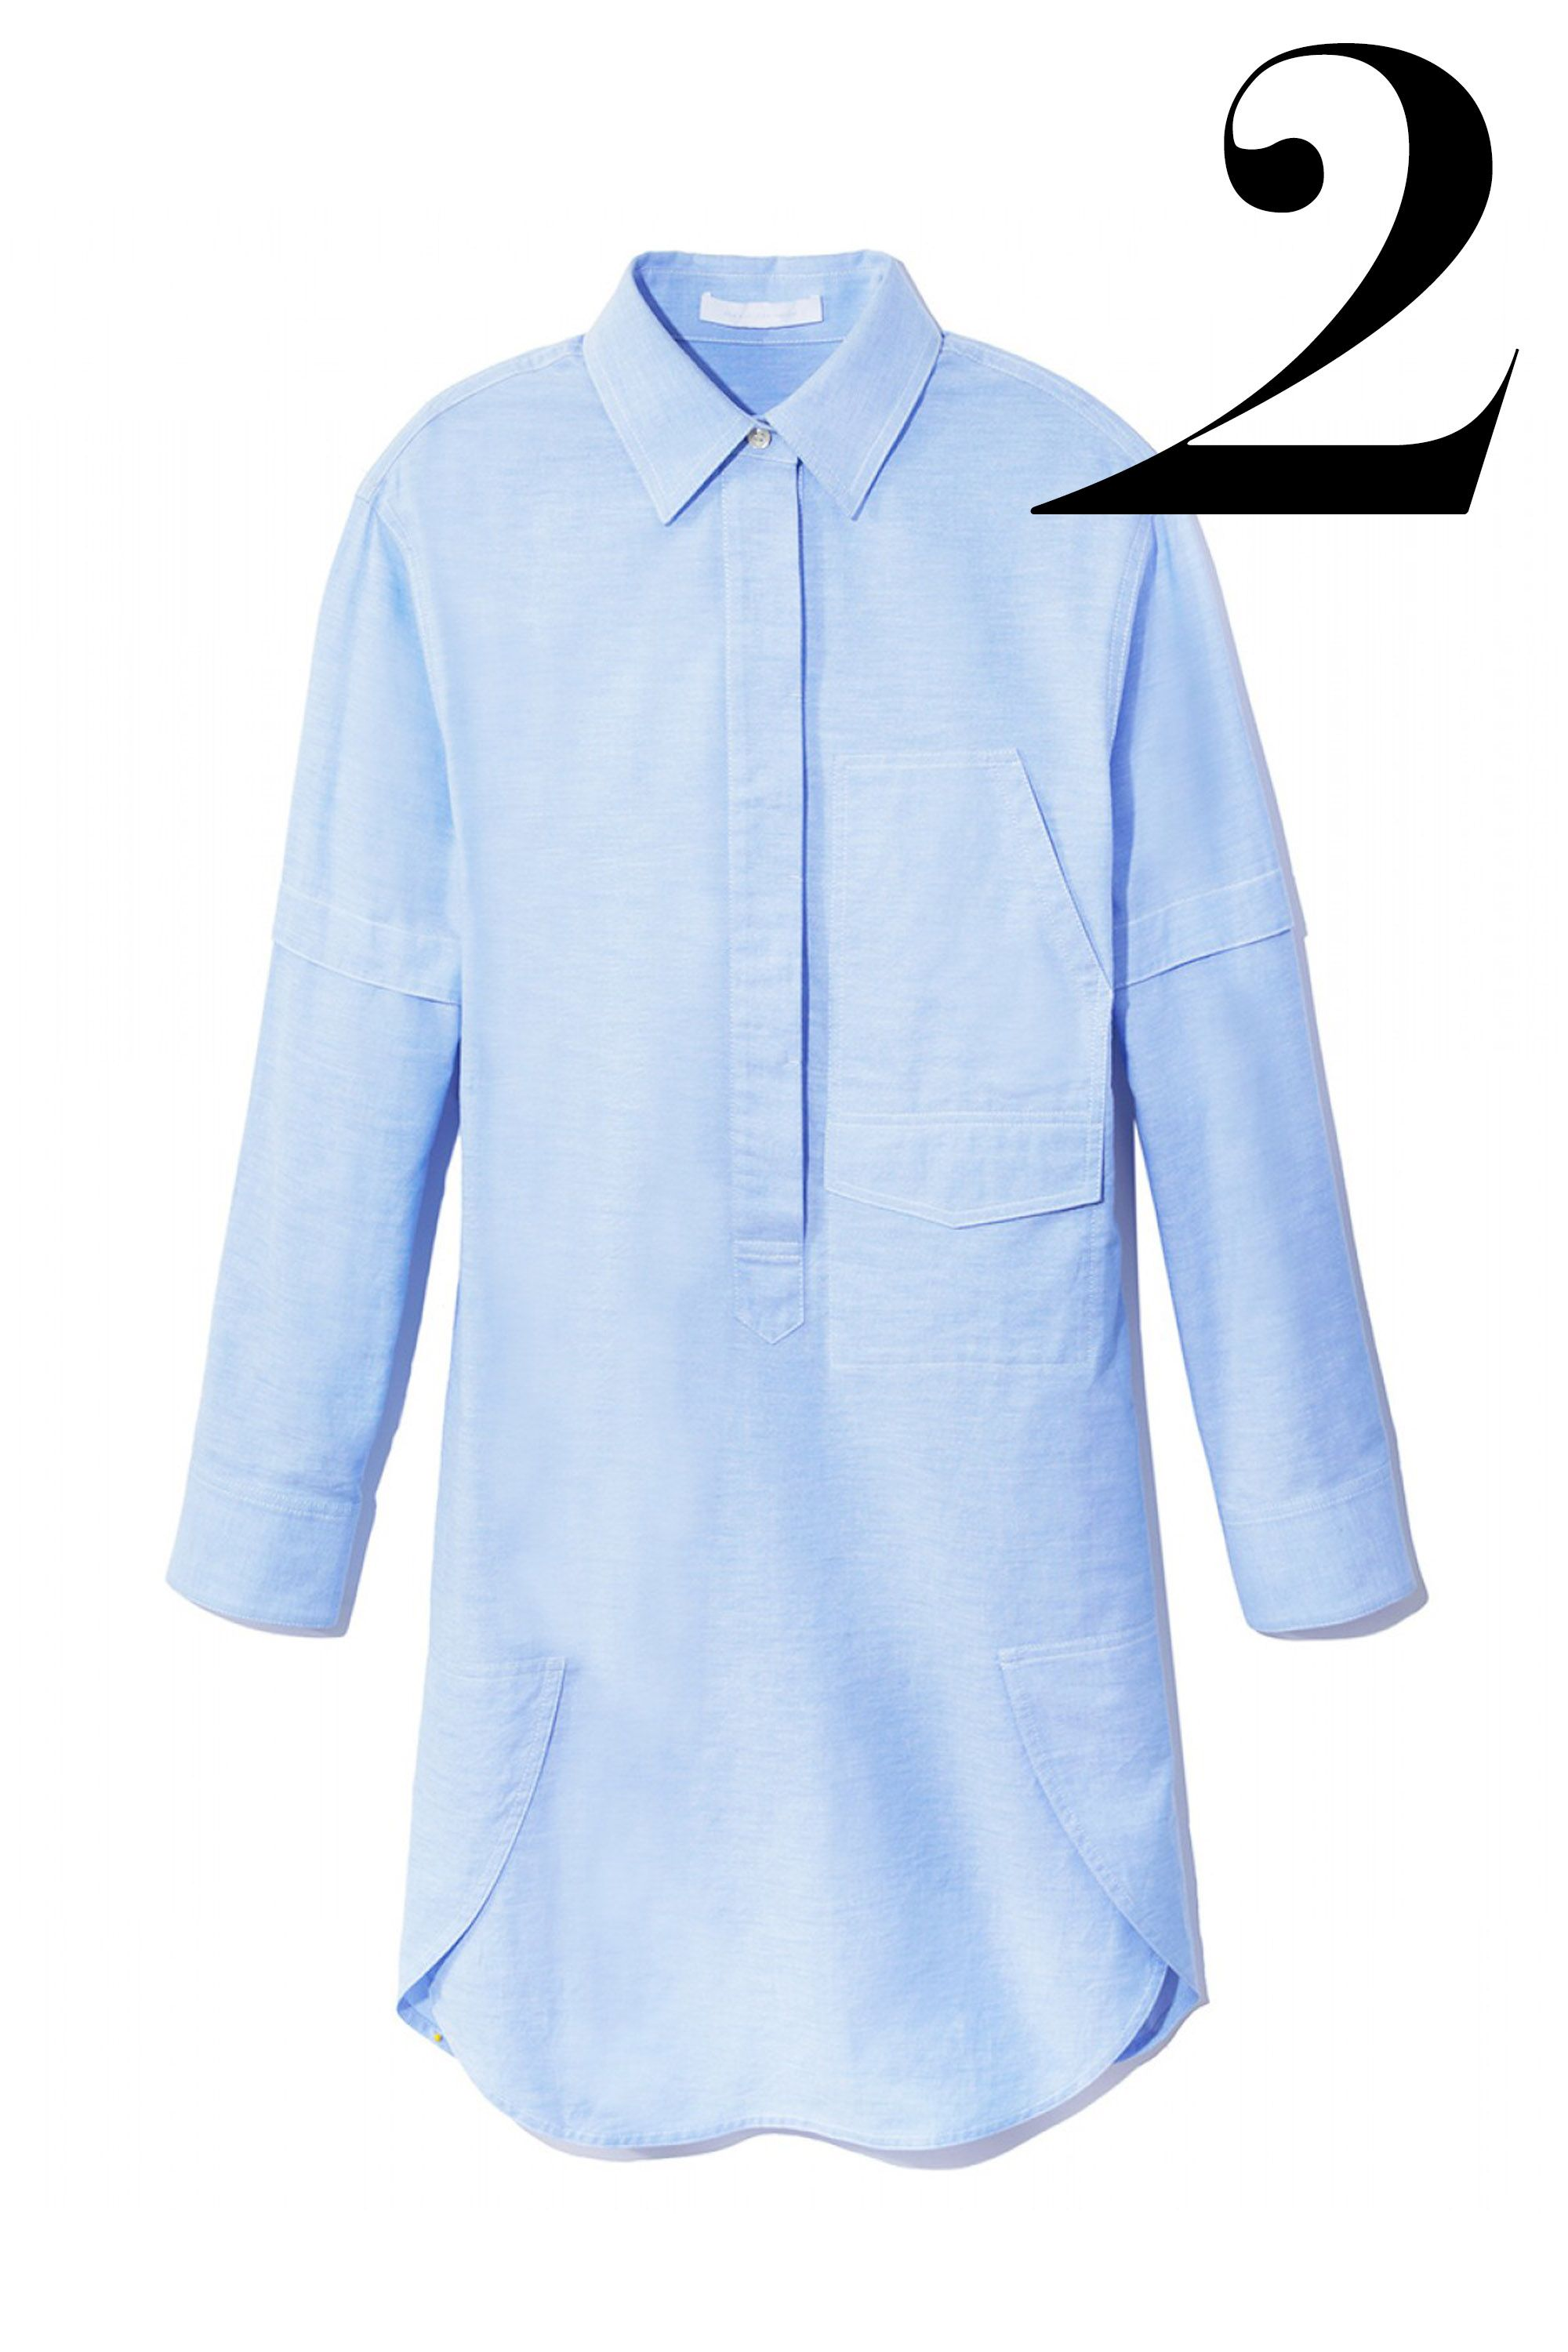 "<em>Alexander Wang shirtdress, $475, <a target=""_blank"" href=""http://shop.harpersbazaar.com/designers/alexander-wang/blue-cotton-shirtdress/"">shopBAZAAR.com</a></em>"